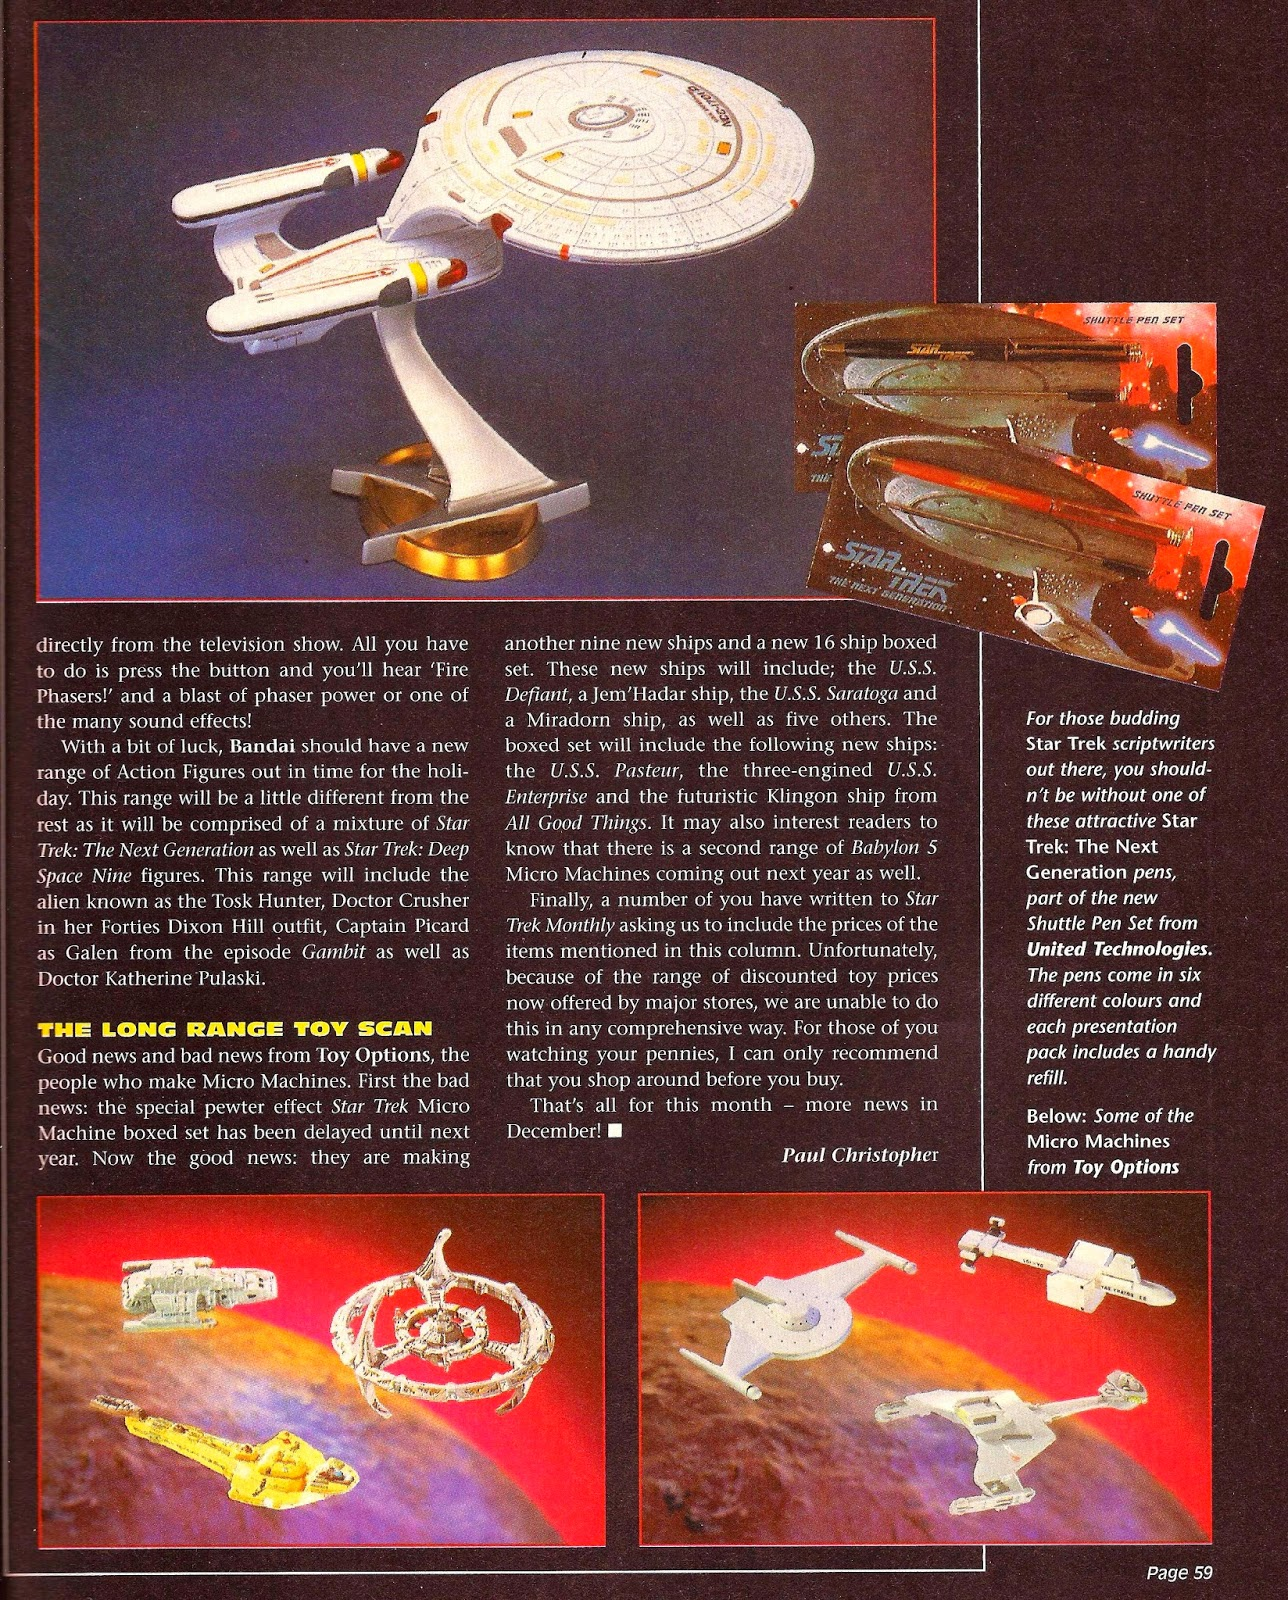 Star Trek Monthly Playmates